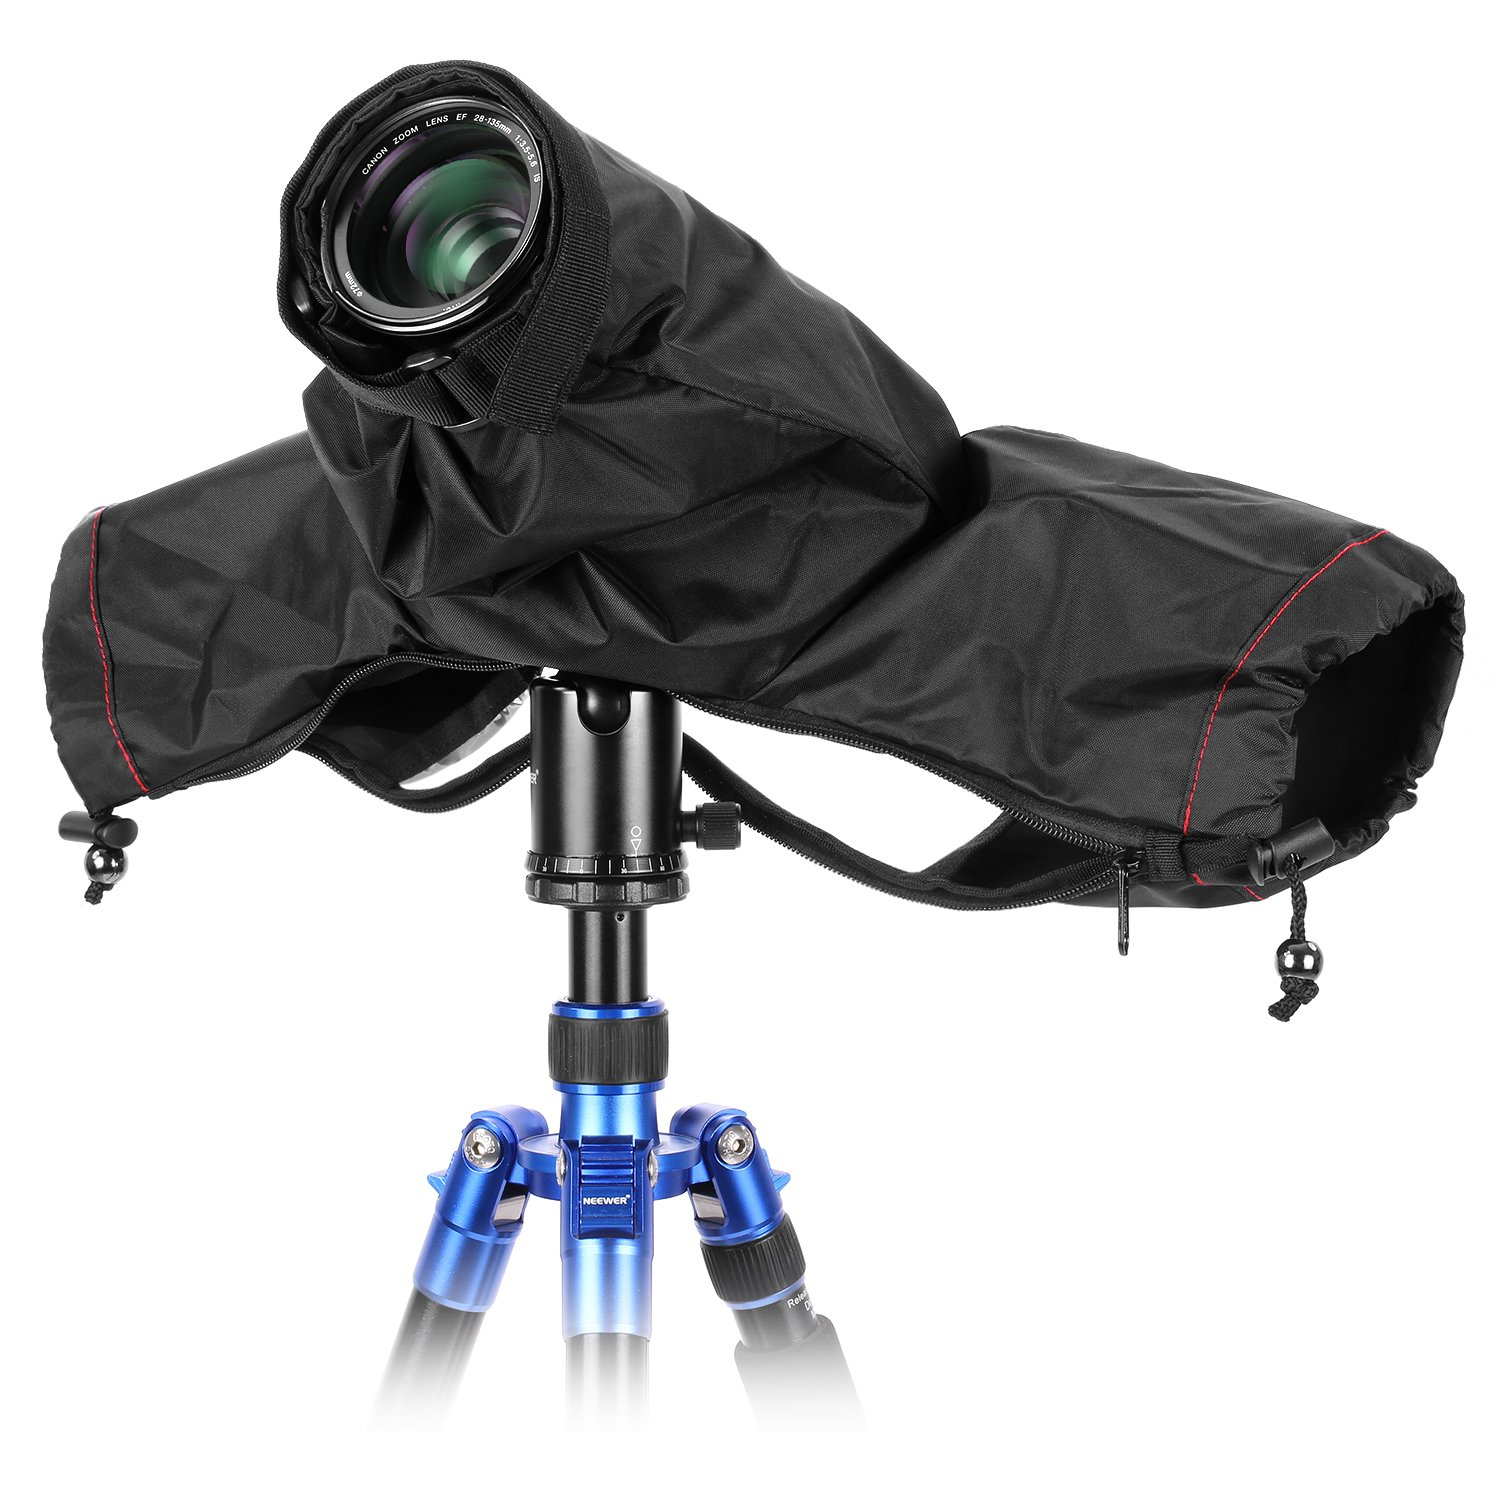 Neewer Pro Camera Rain Cover Shield Coat Protector Sleeve Dust-proof Waterproof Nylon Rainwear for Large Canon, Nikon, Sony, Pentax, Sigma, Tamron and other DSLR Cameras (Black) by Neewer